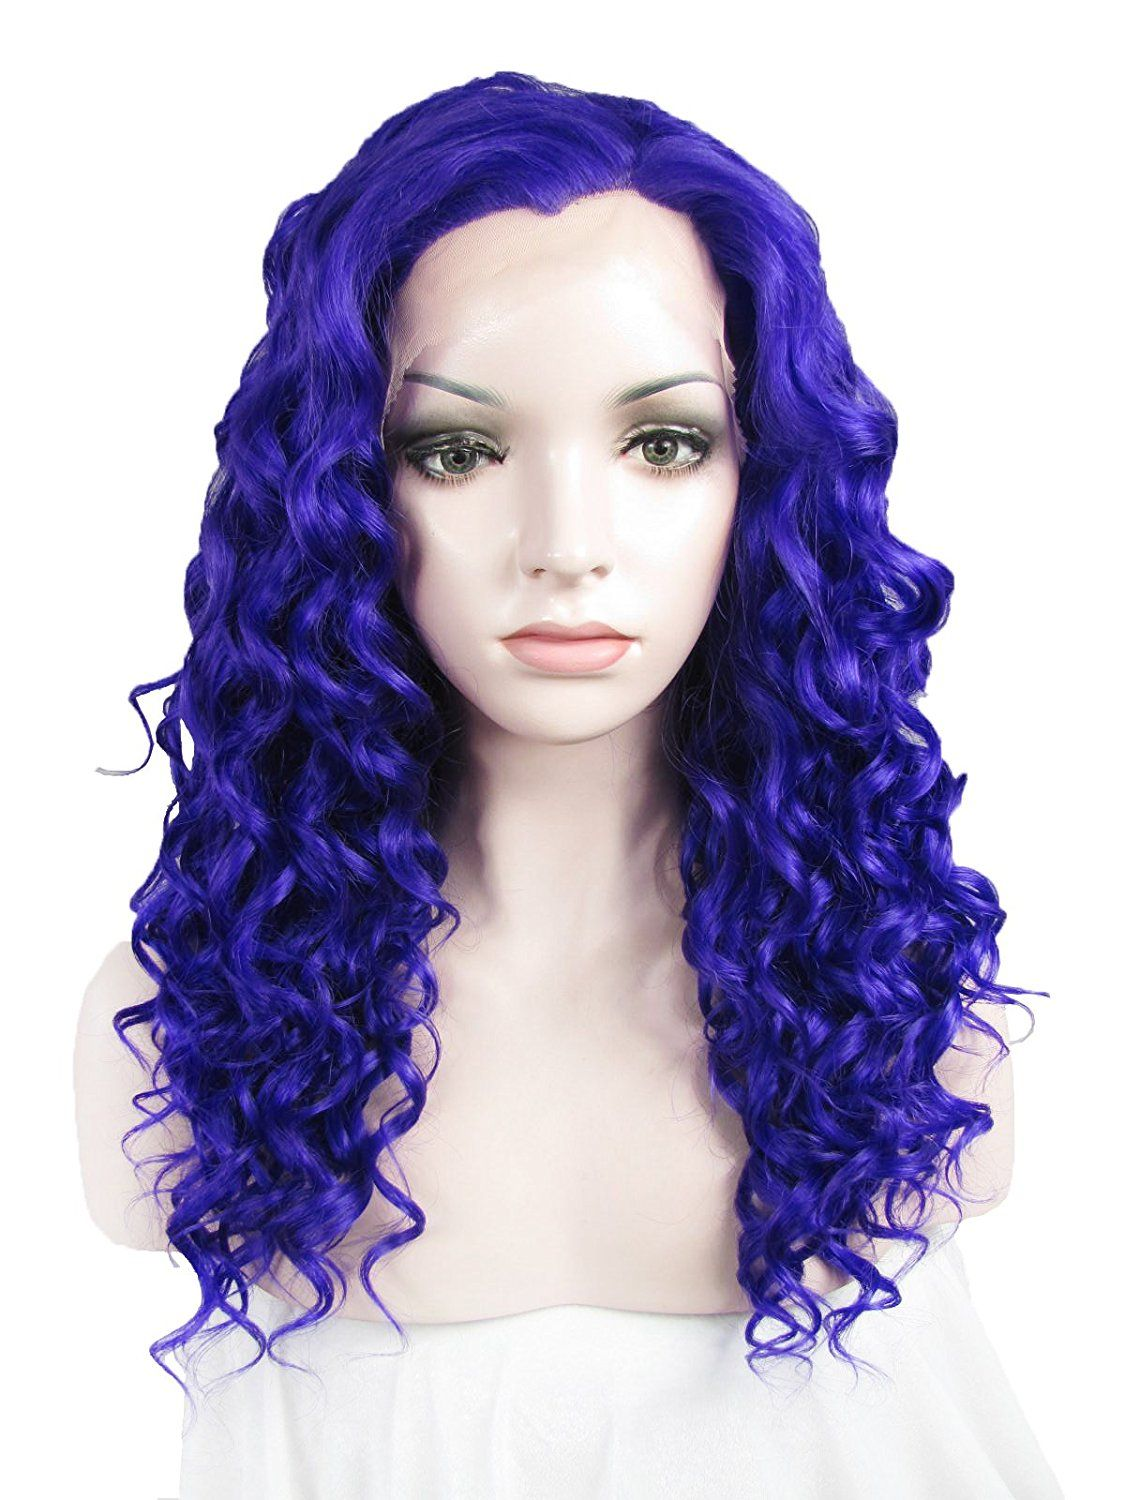 Imstyle Cosplay Party Wig Synthetic Short Curly Dark